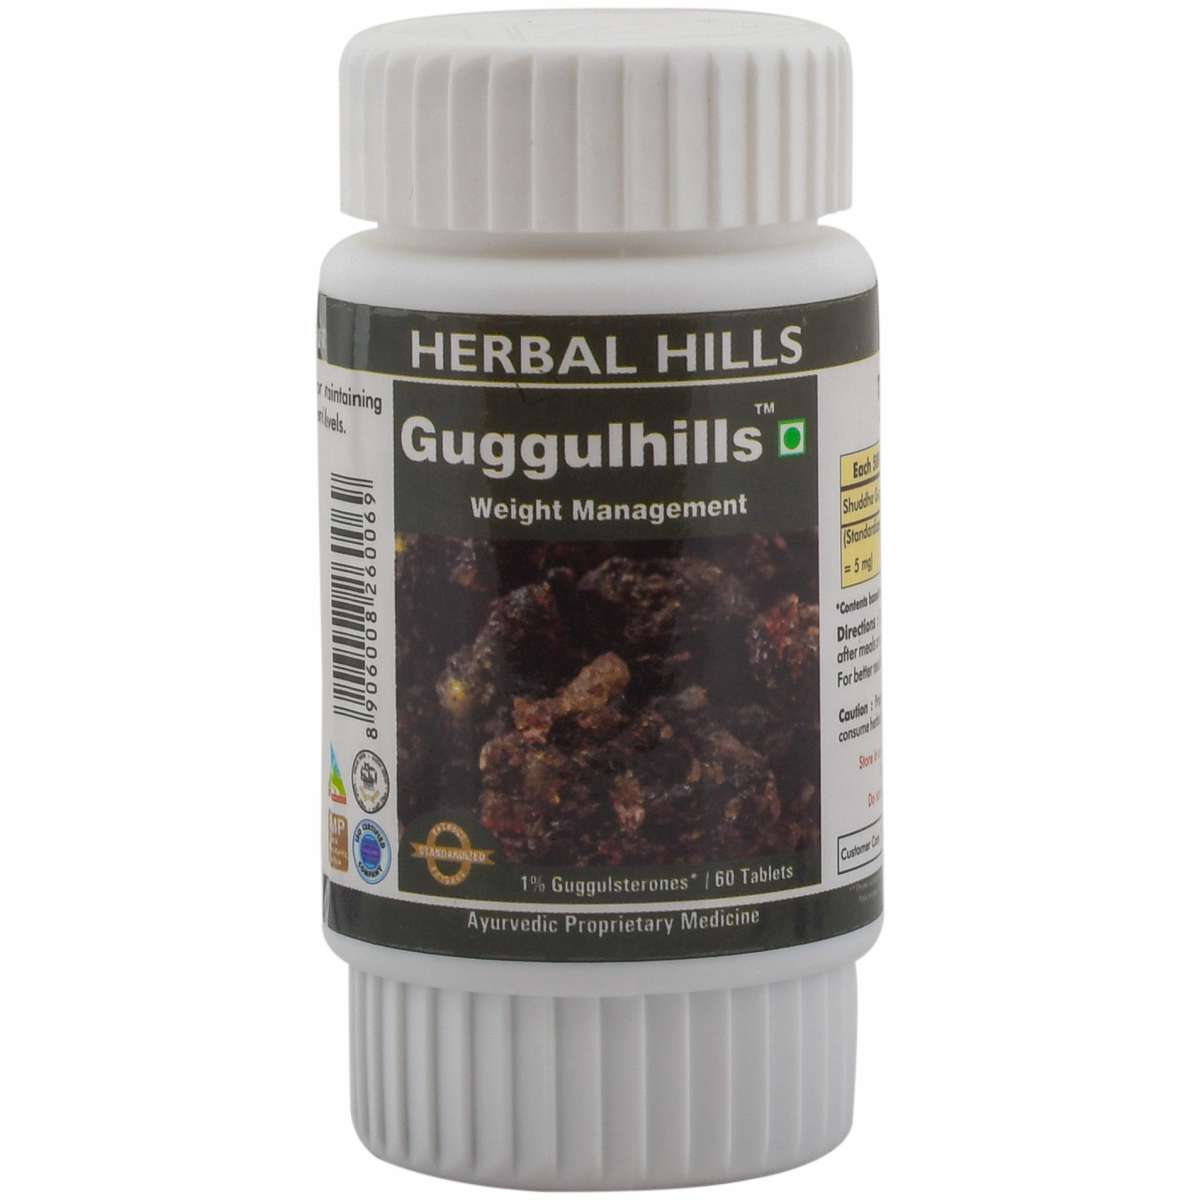 Herbal Hills Guggul 60 Tablets Ayurvedic Guggul (Commiphora mukul) 500 mg Gugglasterone extract in a tablet